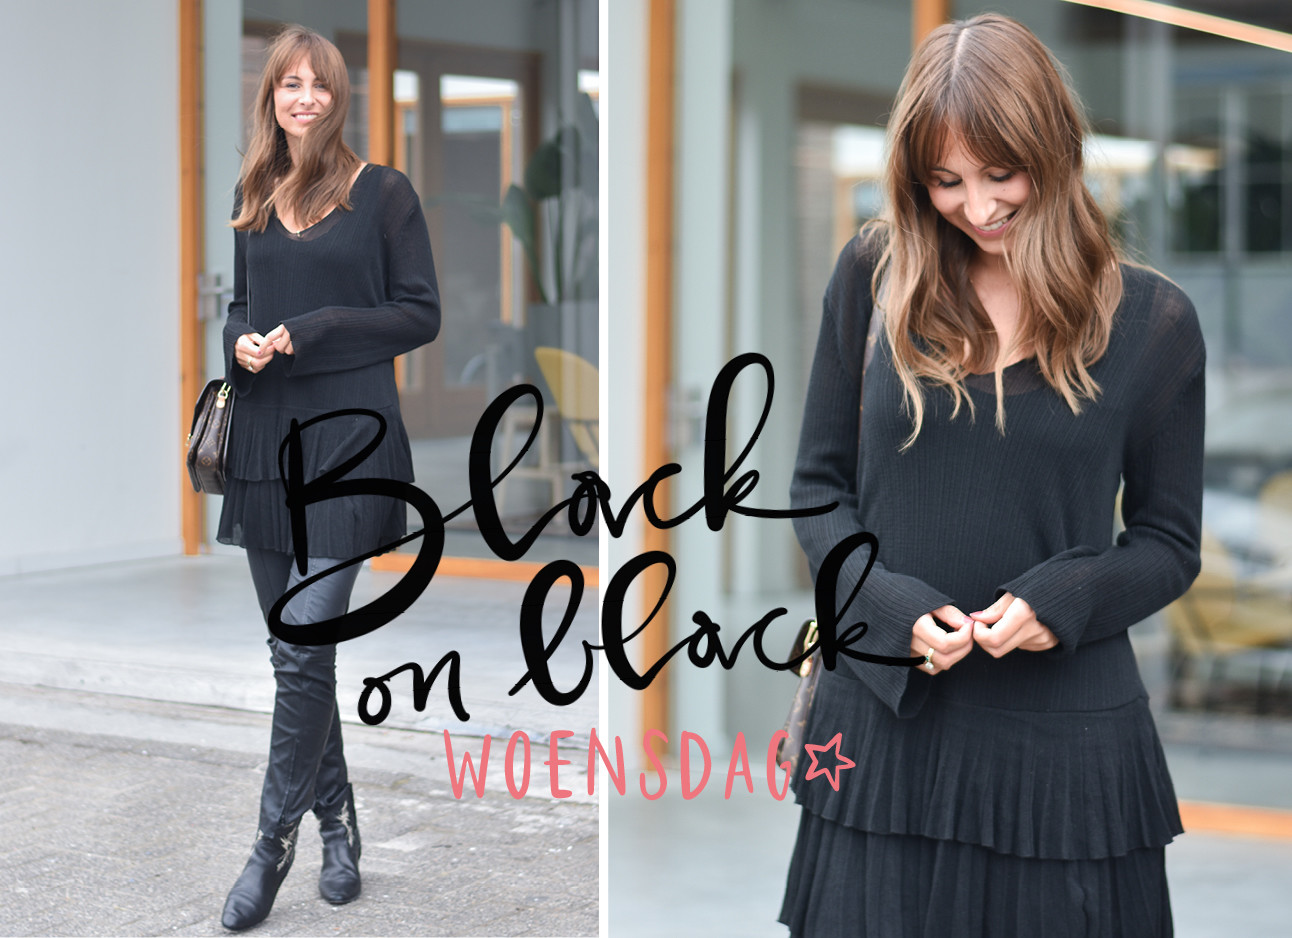 lilian brijl in de look of the day, black on black outfit, woensdag